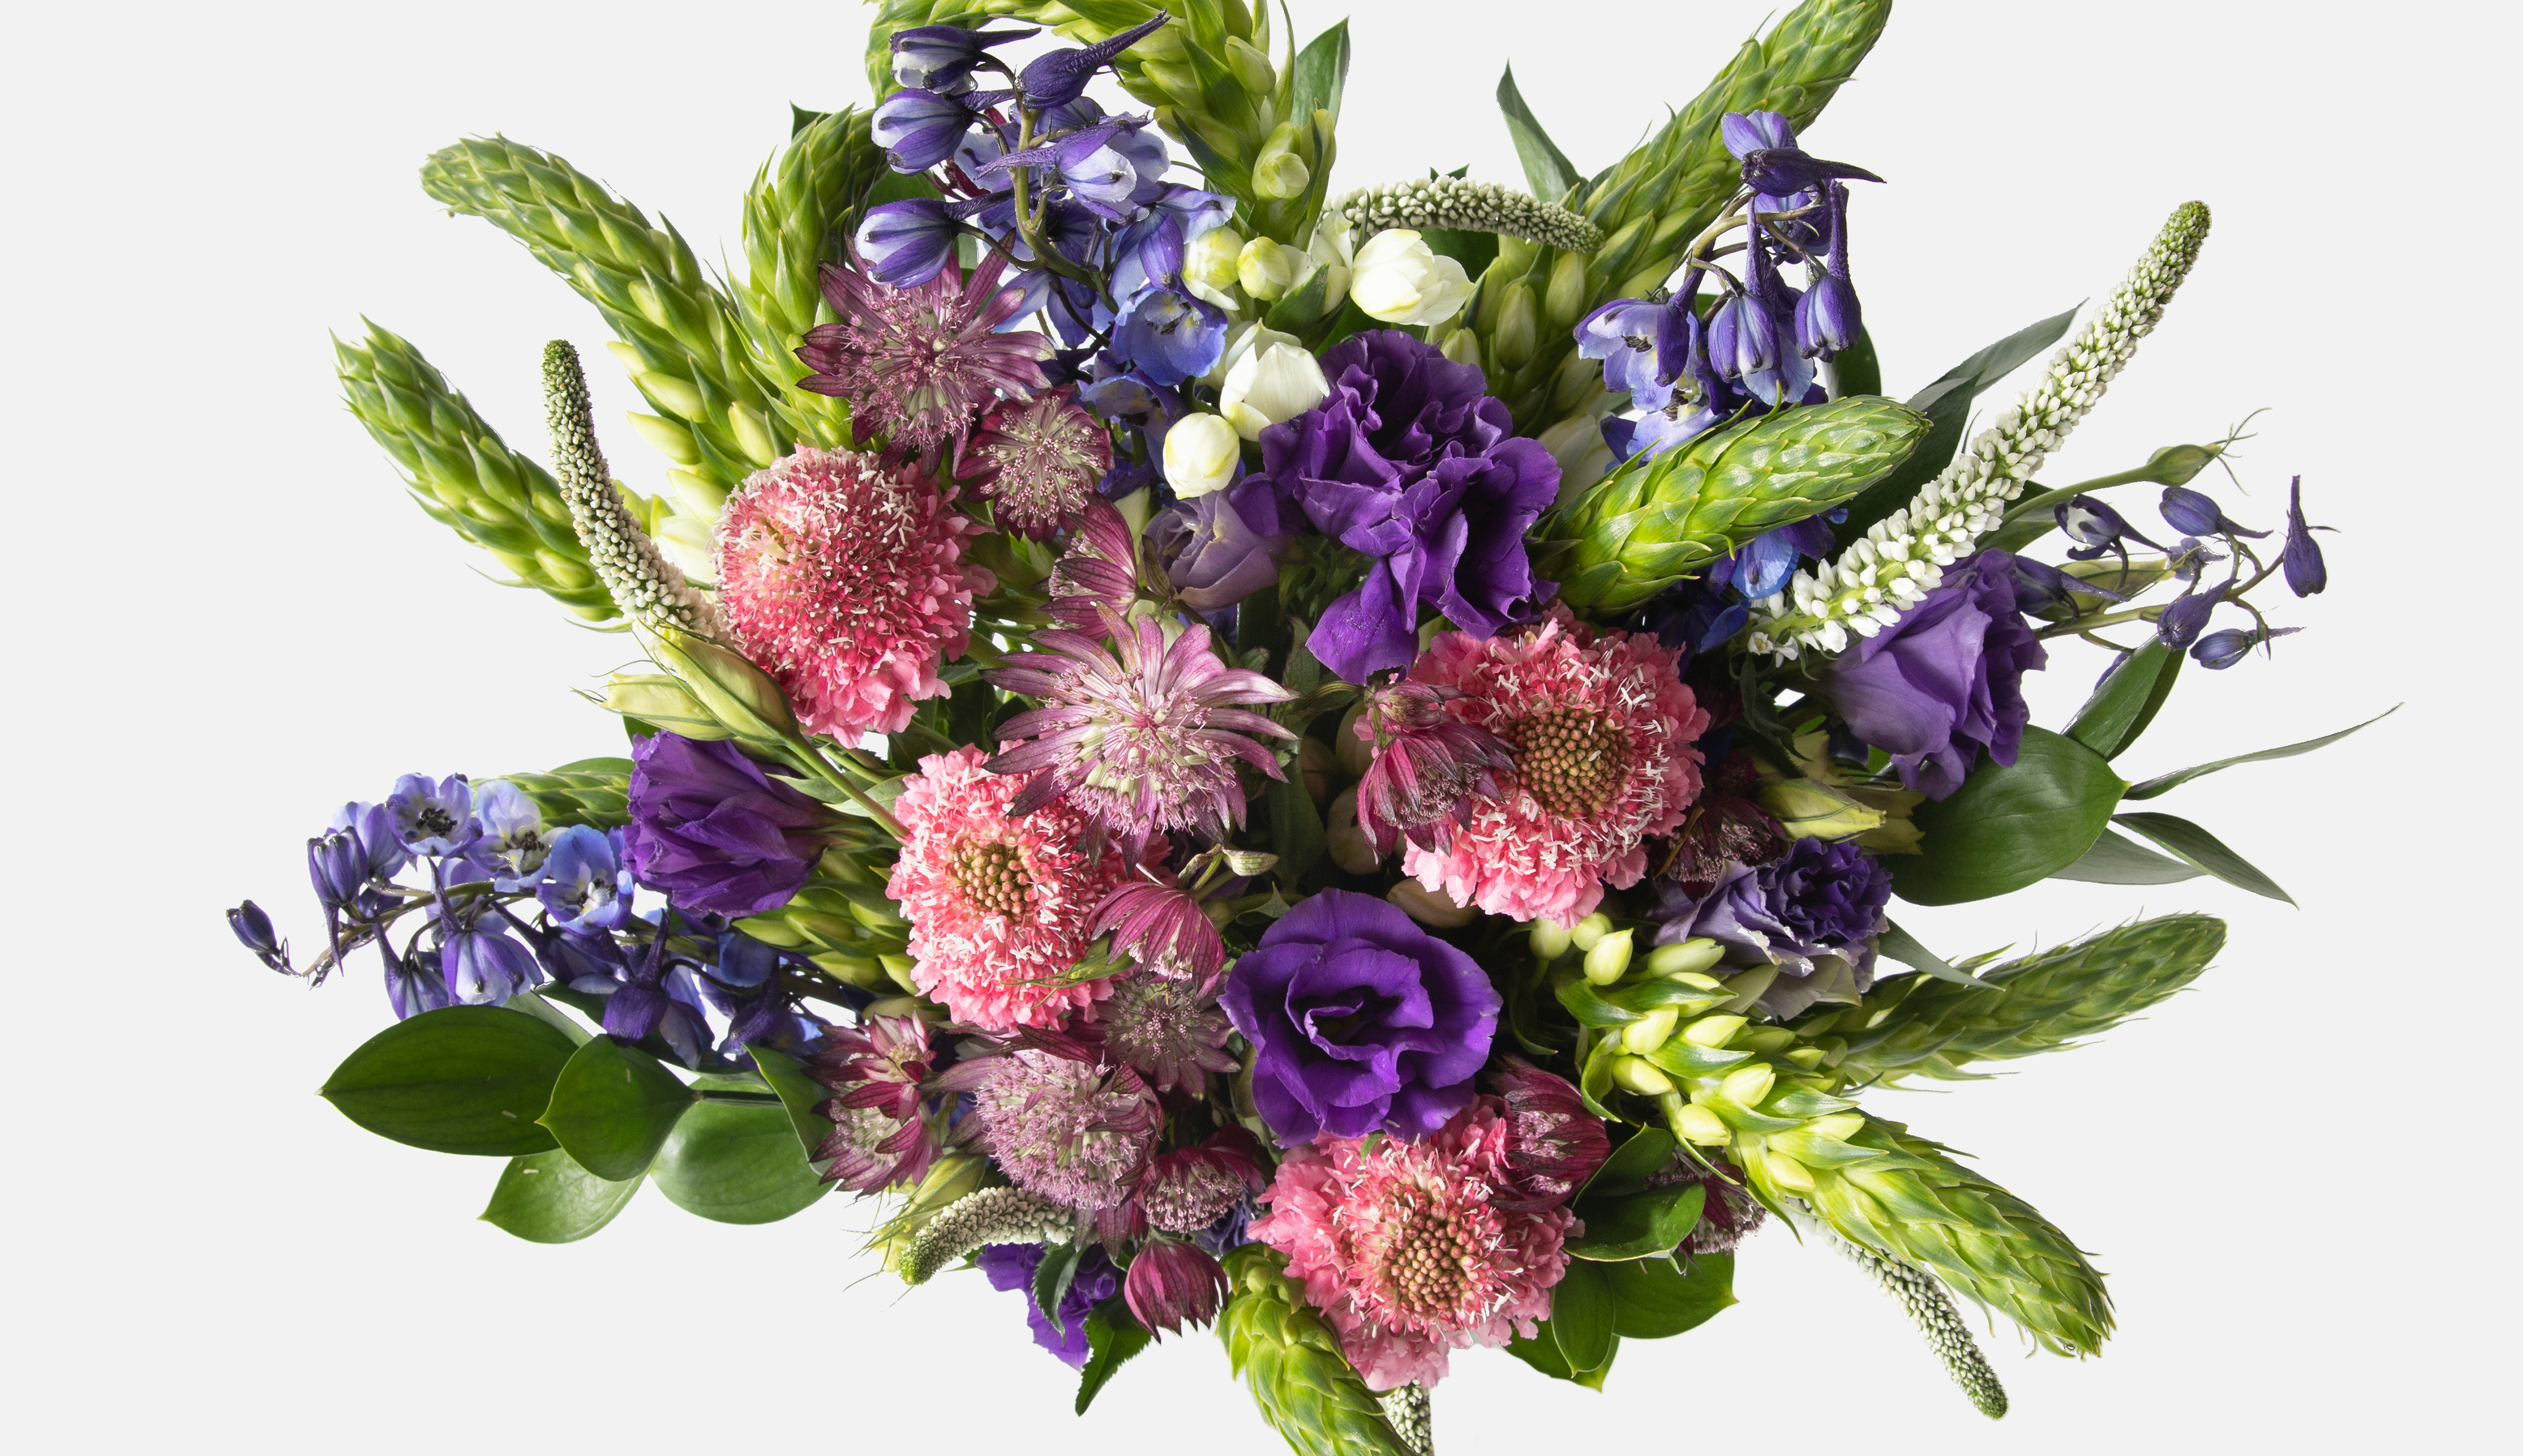 Top down view of a flower bouquet with delphiniums